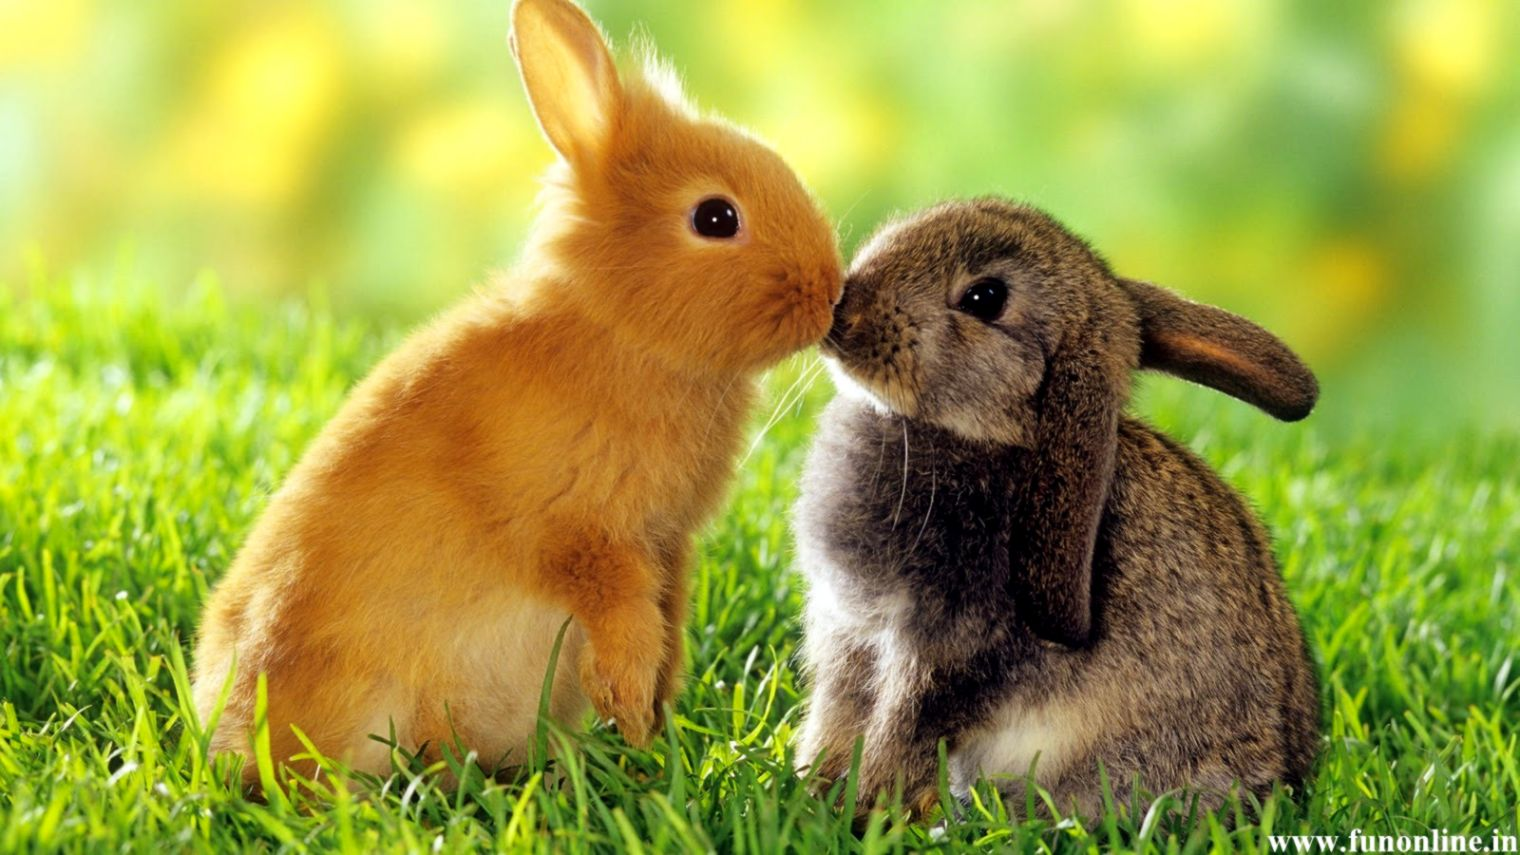 Cute Rabbit Wallpaper Free Download Wallpapers Library